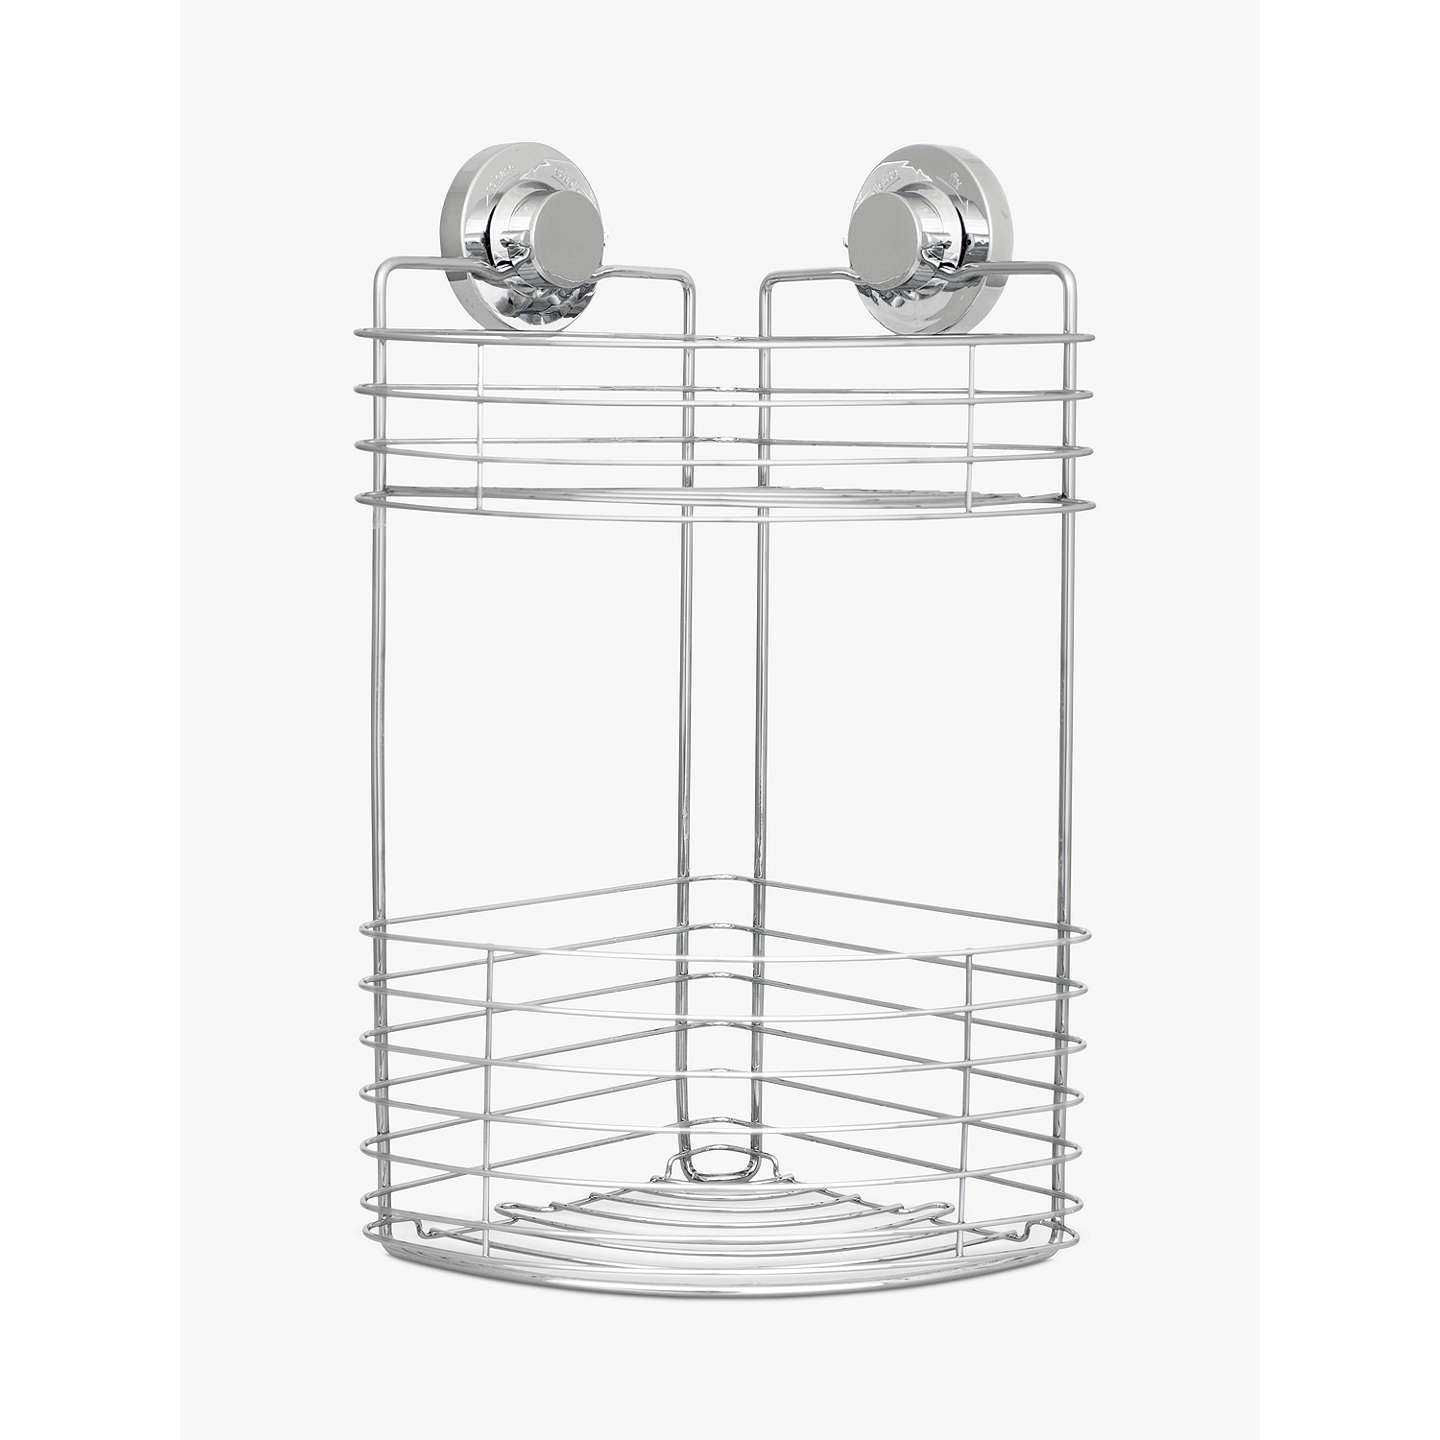 BuyBliss Lock N Roll 2 Tier Suction Shower Corner Basket Online At  Johnlewis.com